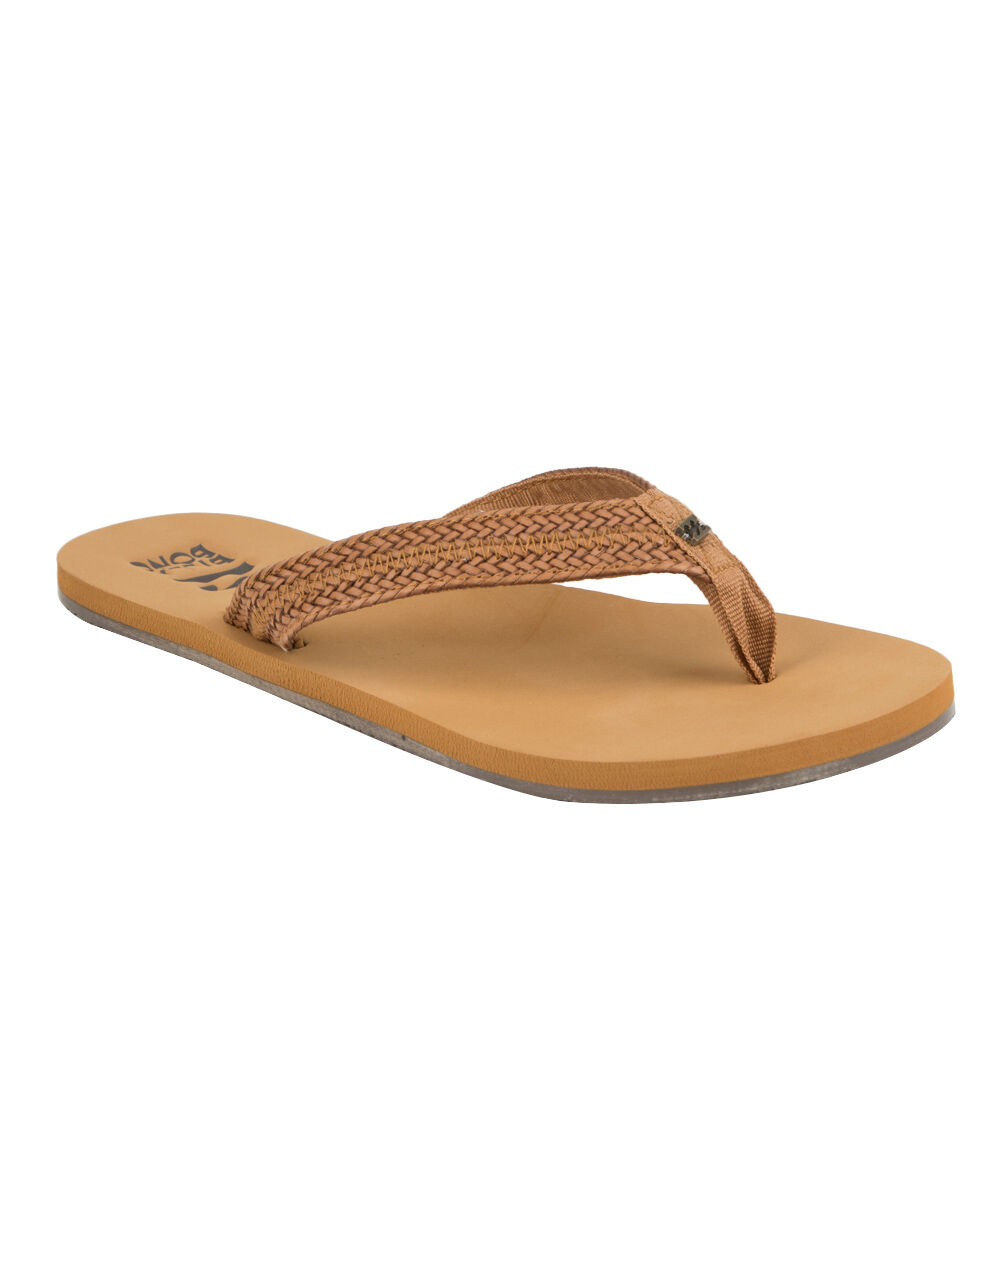 BILLABONG KAI SANDALS